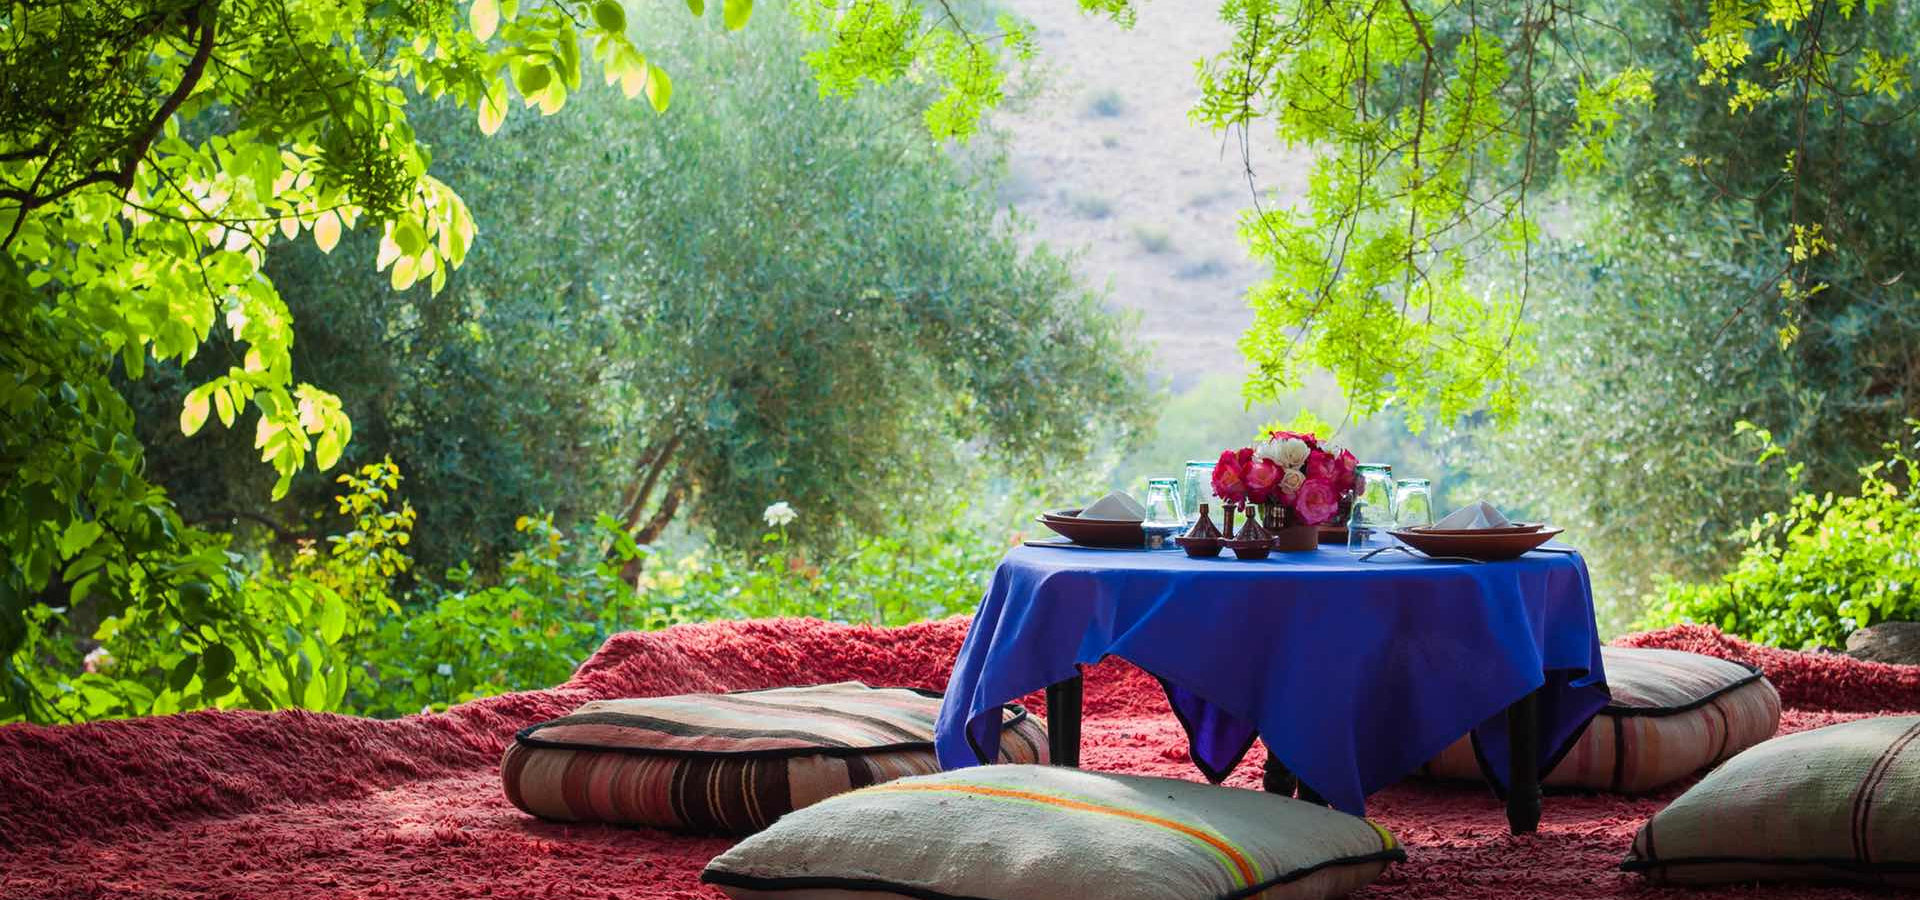 A Morocco retreat that does not compromise on style and delicious cuisine